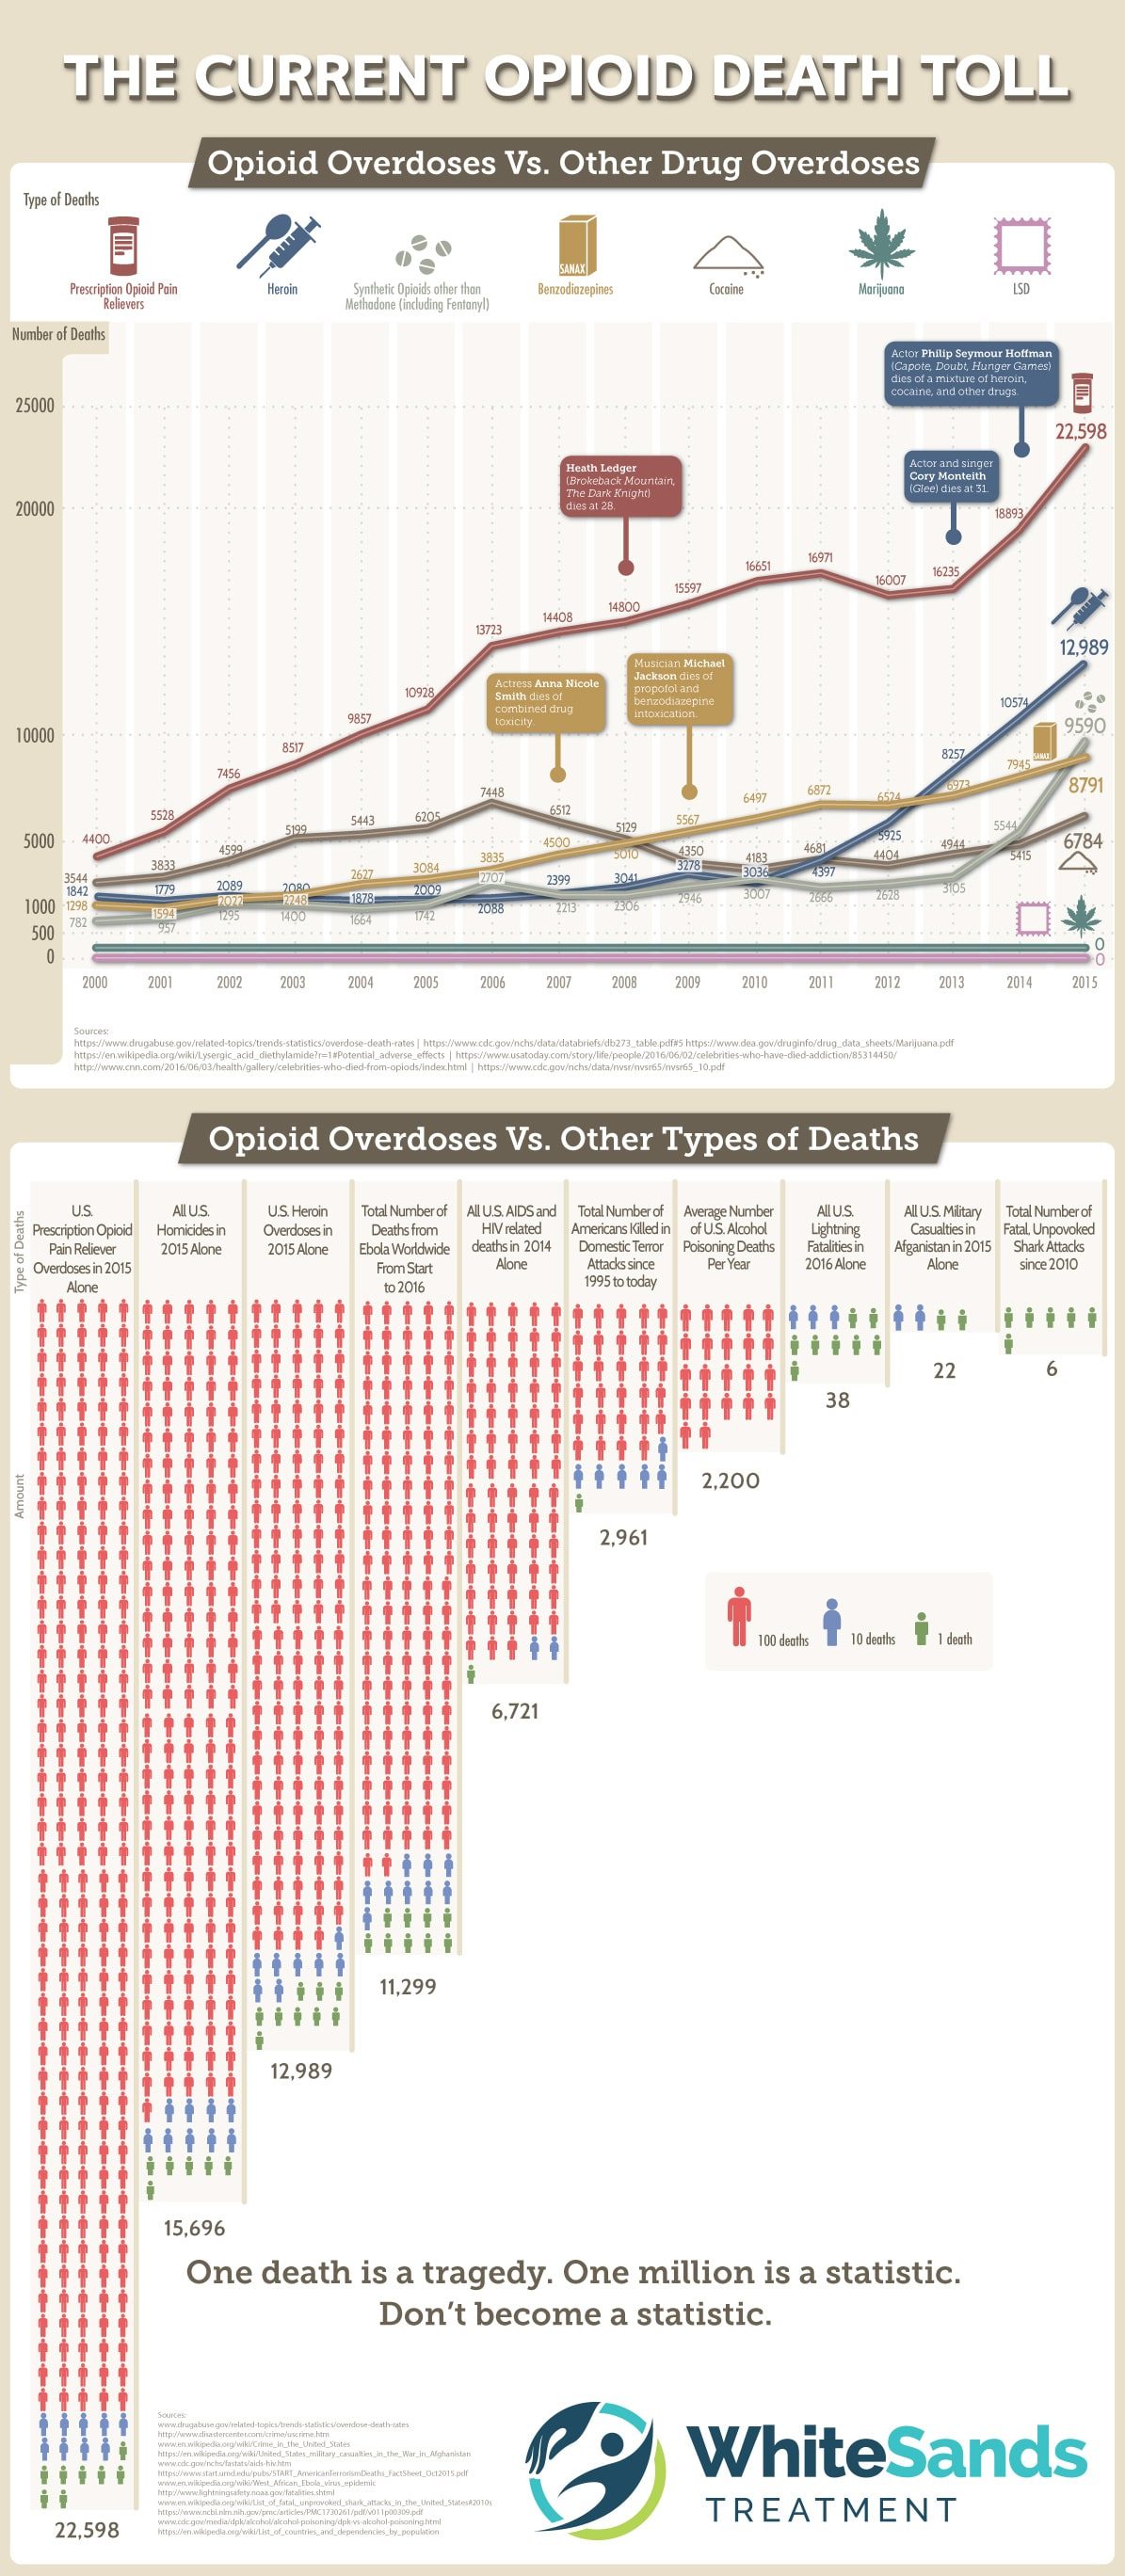 The Current Opioid Death Toll – White Sands Treatment – Infographic